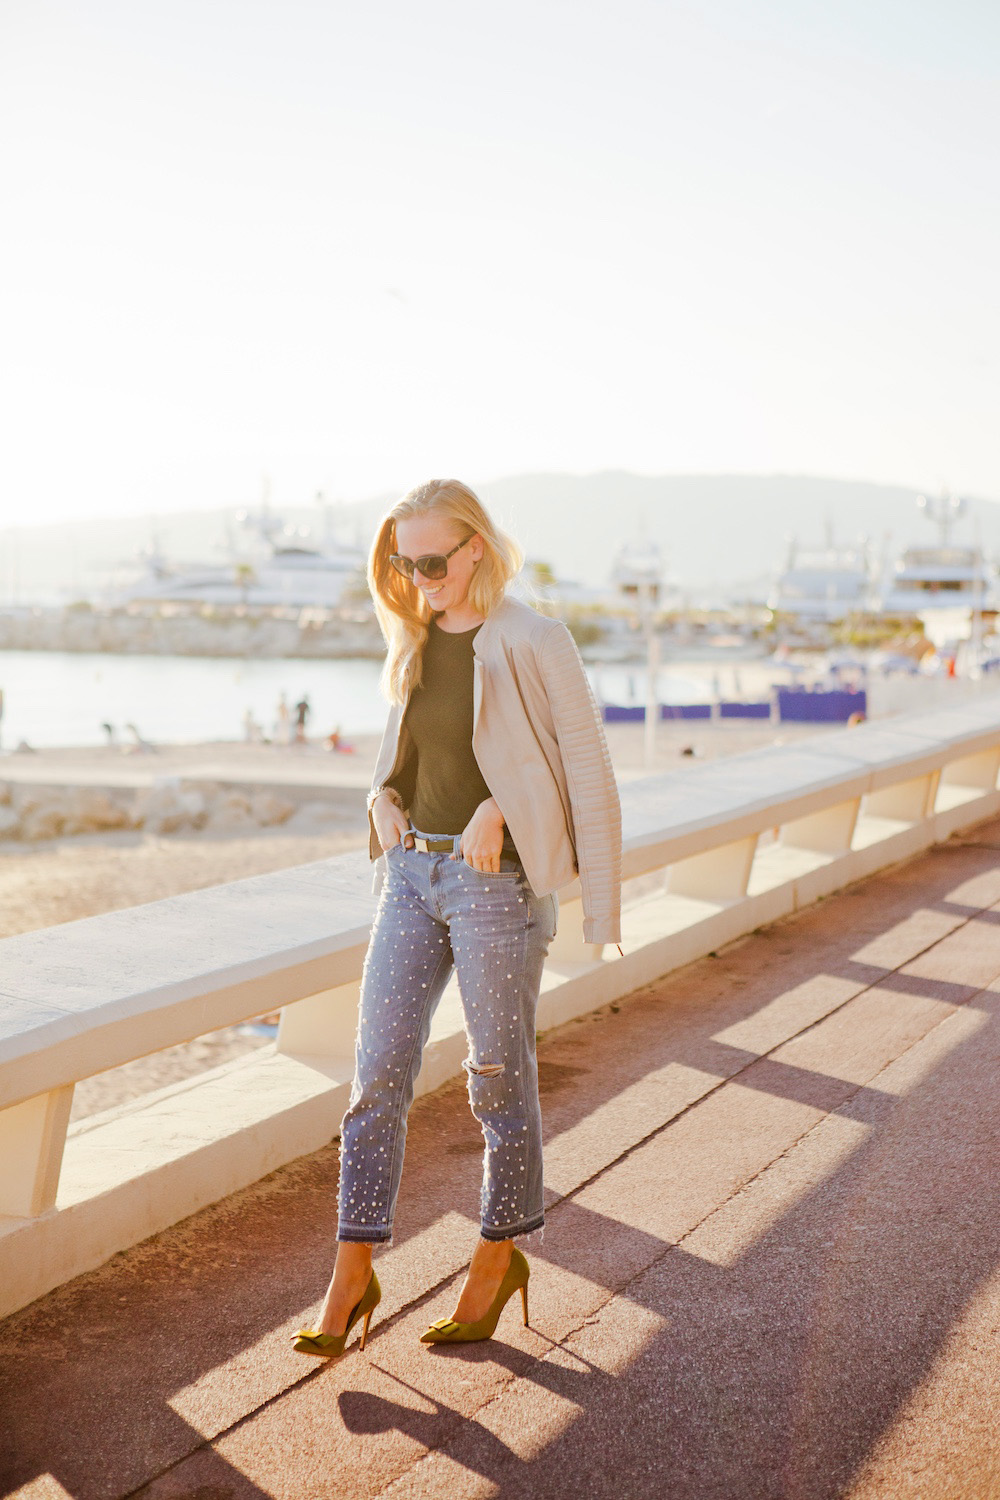 Fashion blogger munich, münchen fashion blogger Look with hm pearl jeans with pearls, Outfit mit HM perlenjeans beige Lederjacke